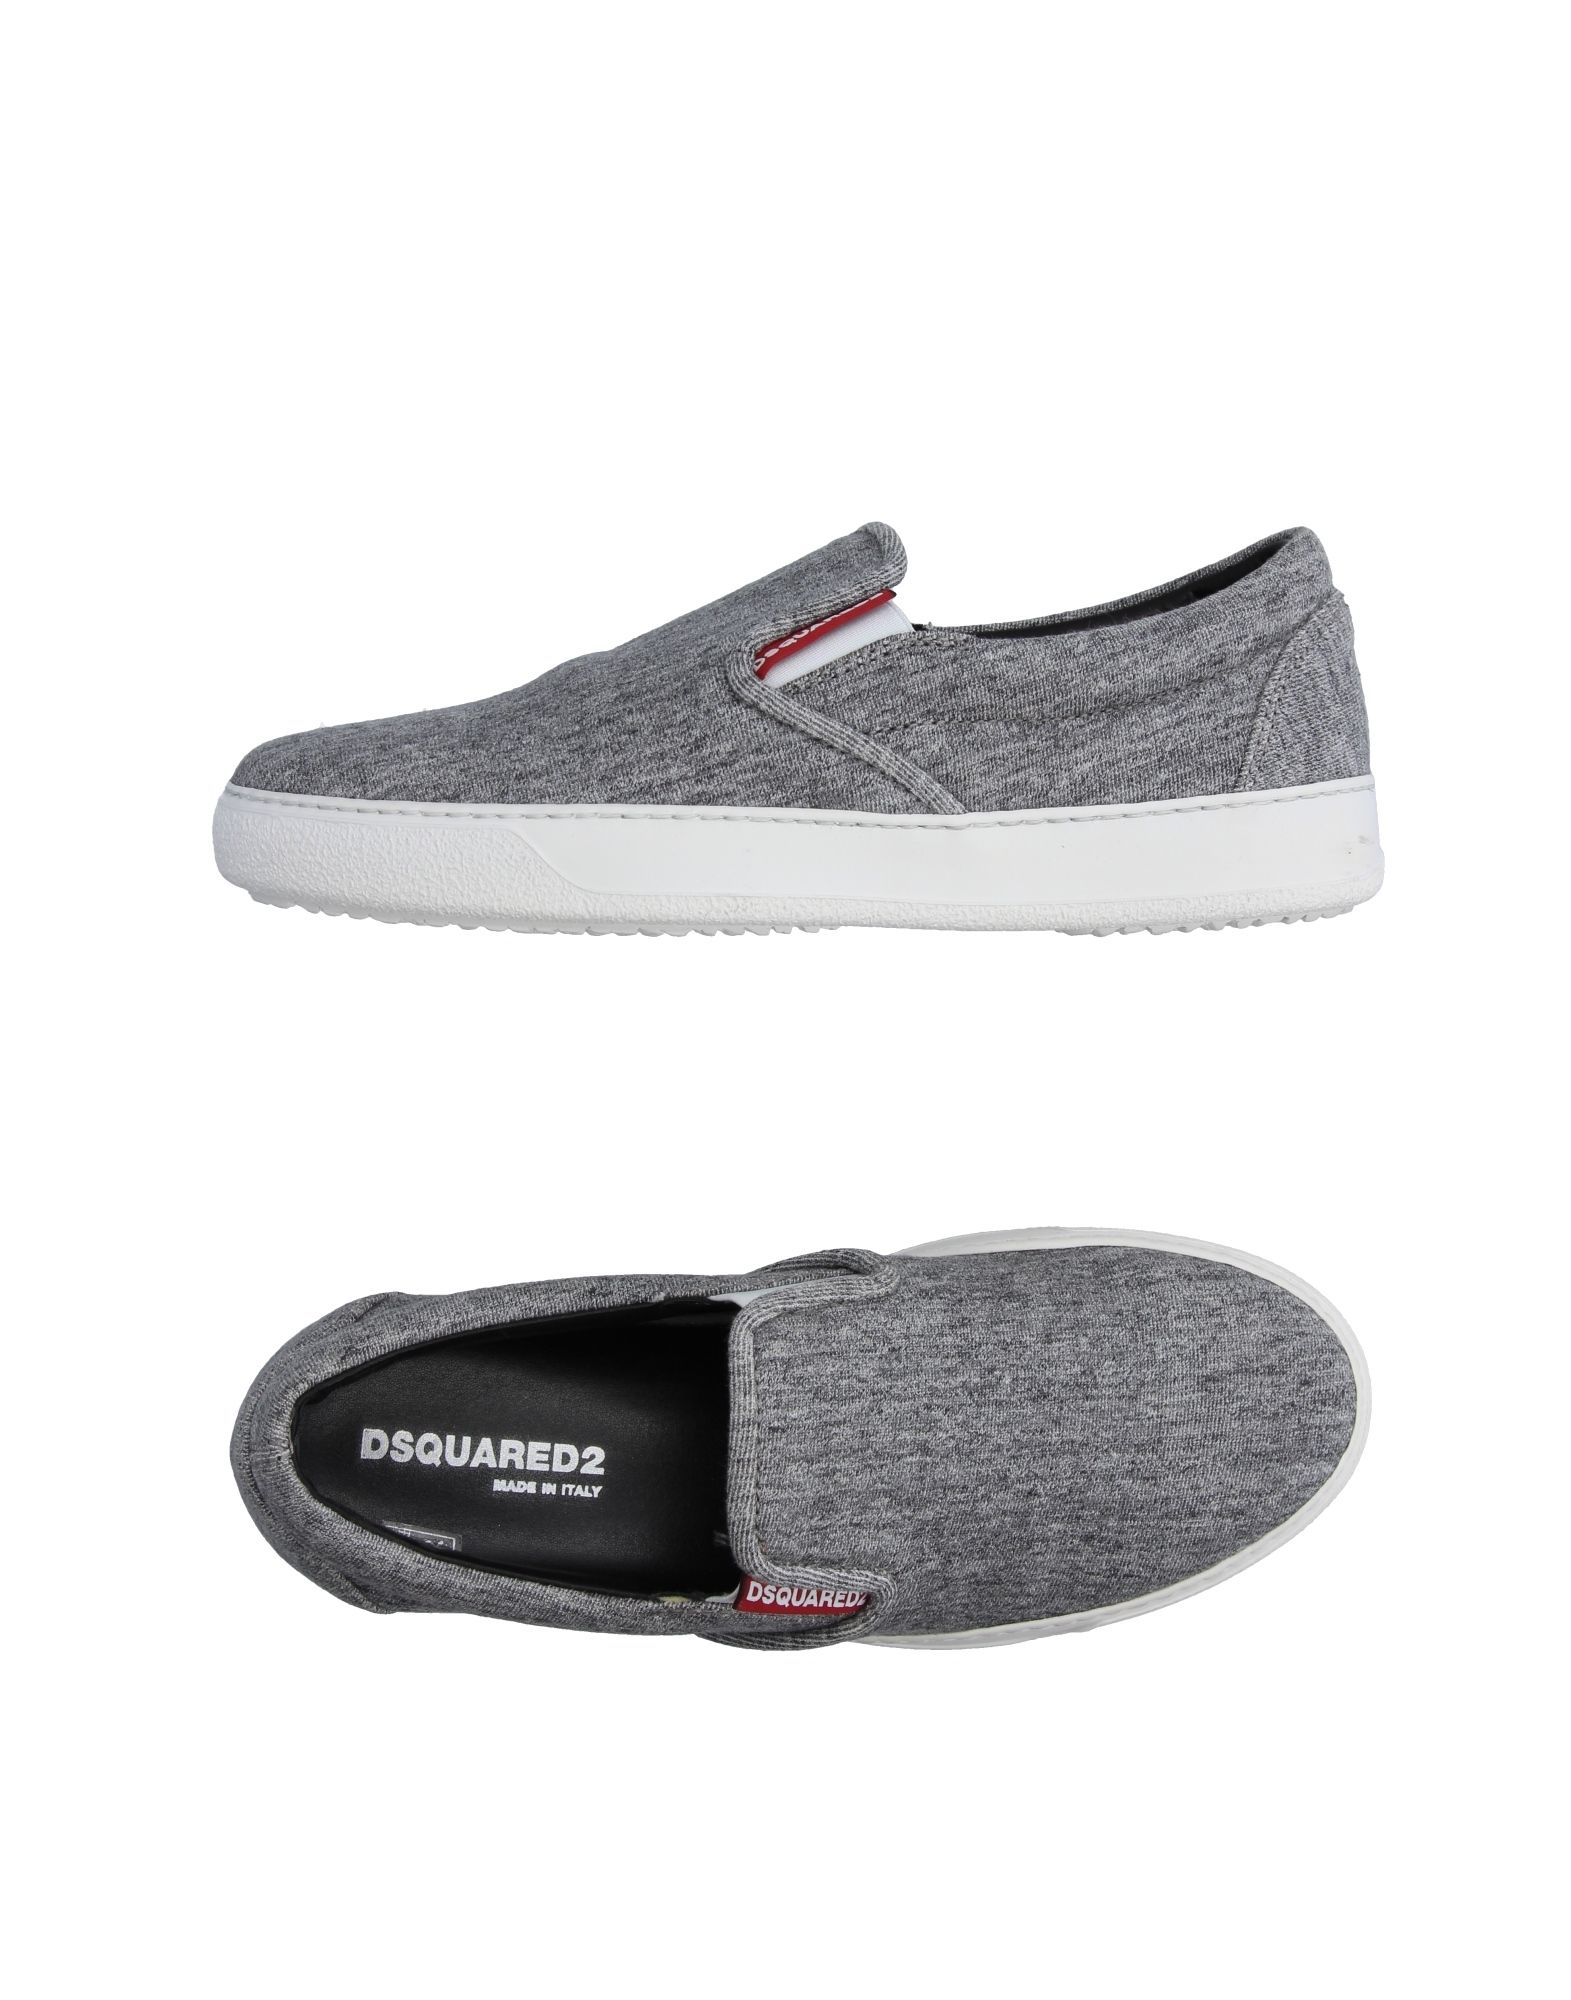 Dsquared2 Sneakers - Men Dsquared2 Sneakers online on    Australia - 11219753XW 173921